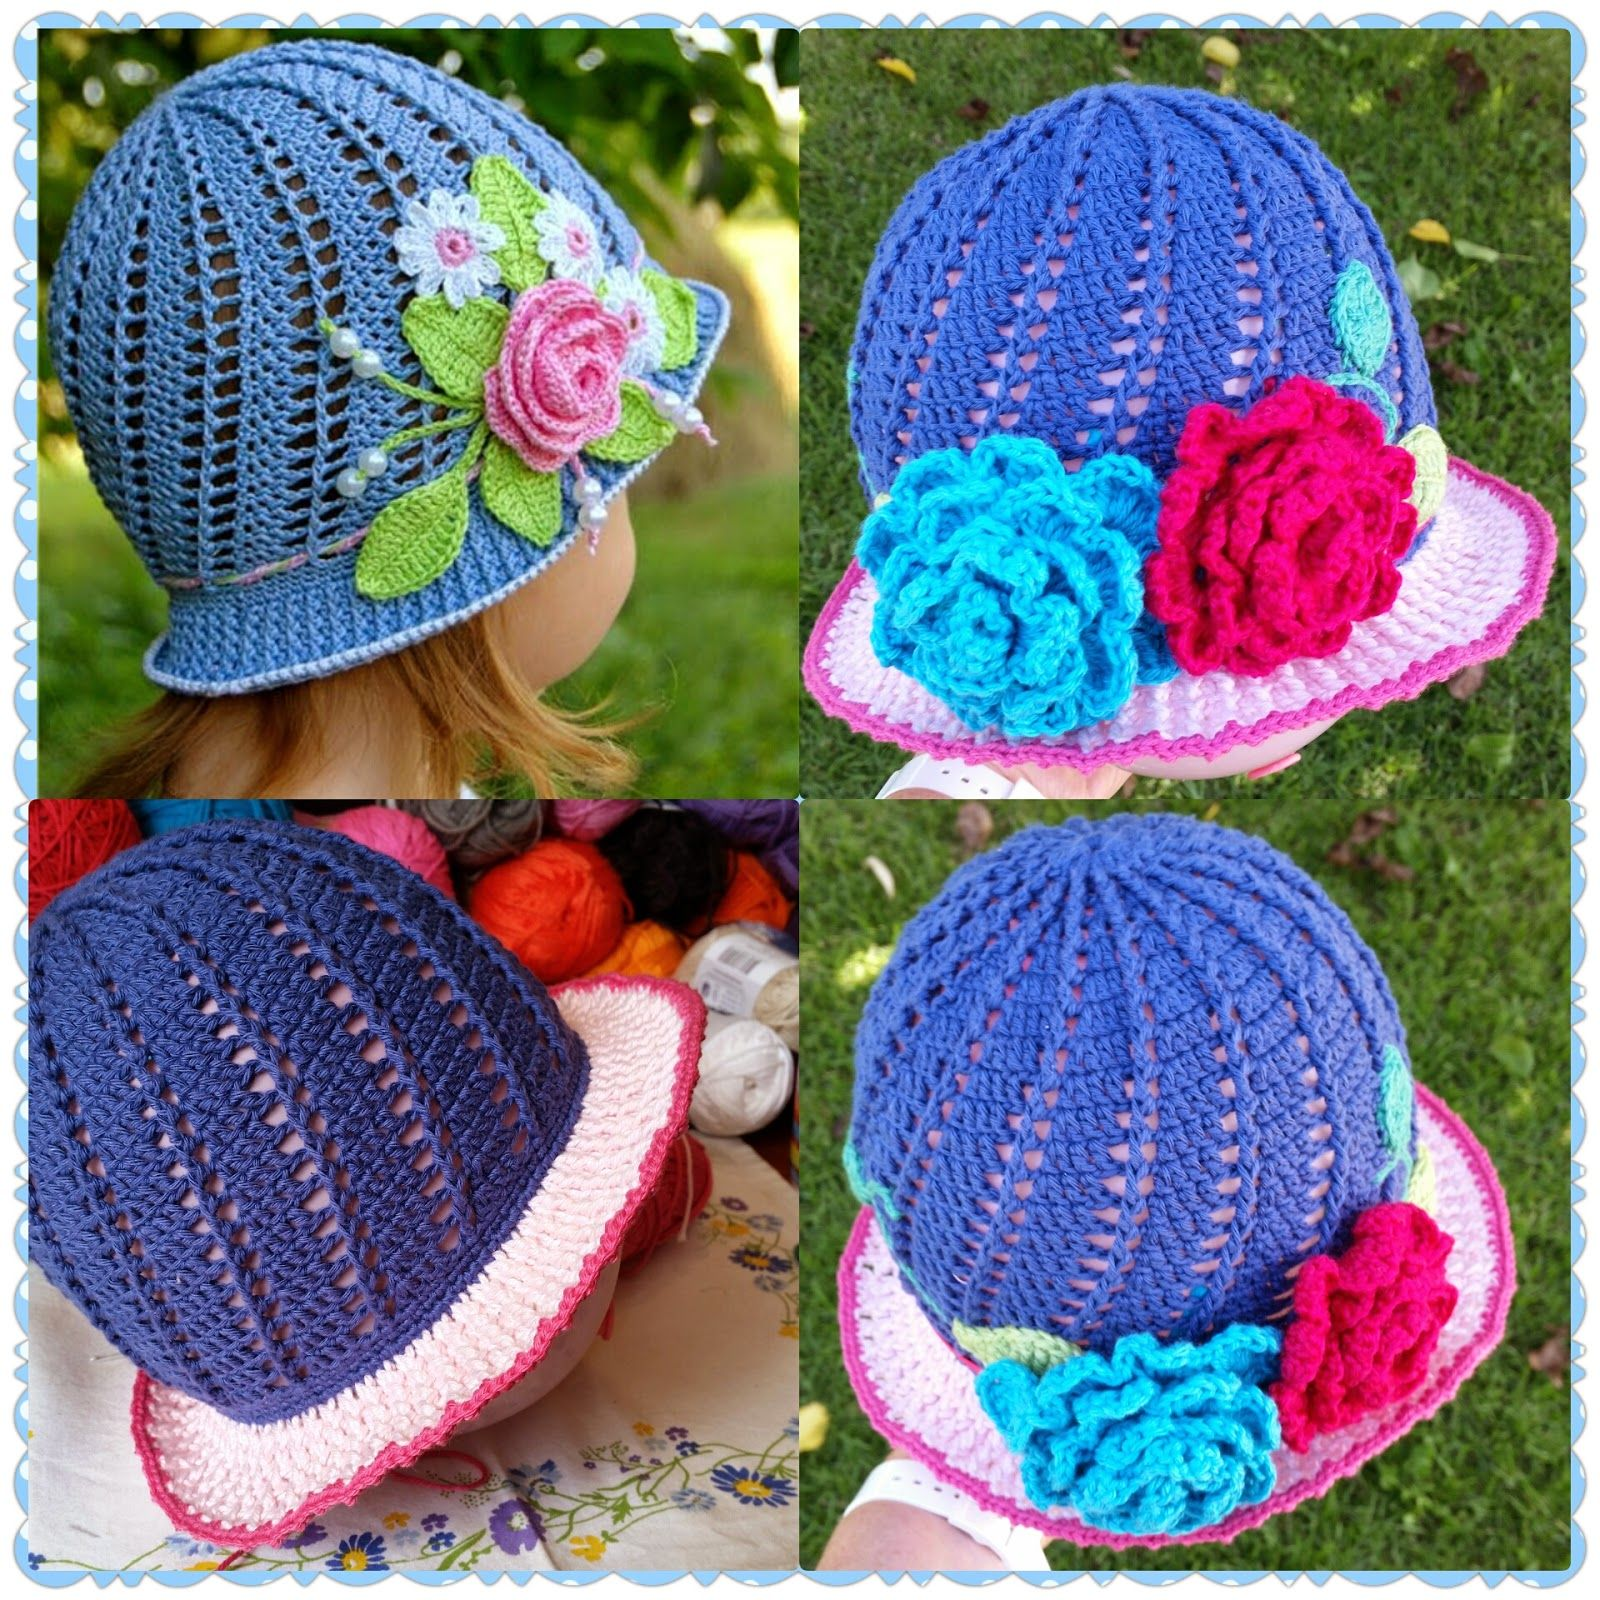 Crochet panama hat for girls free pattern and video tutorial crochet panama hat for girls free pattern and video tutorial bankloansurffo Gallery